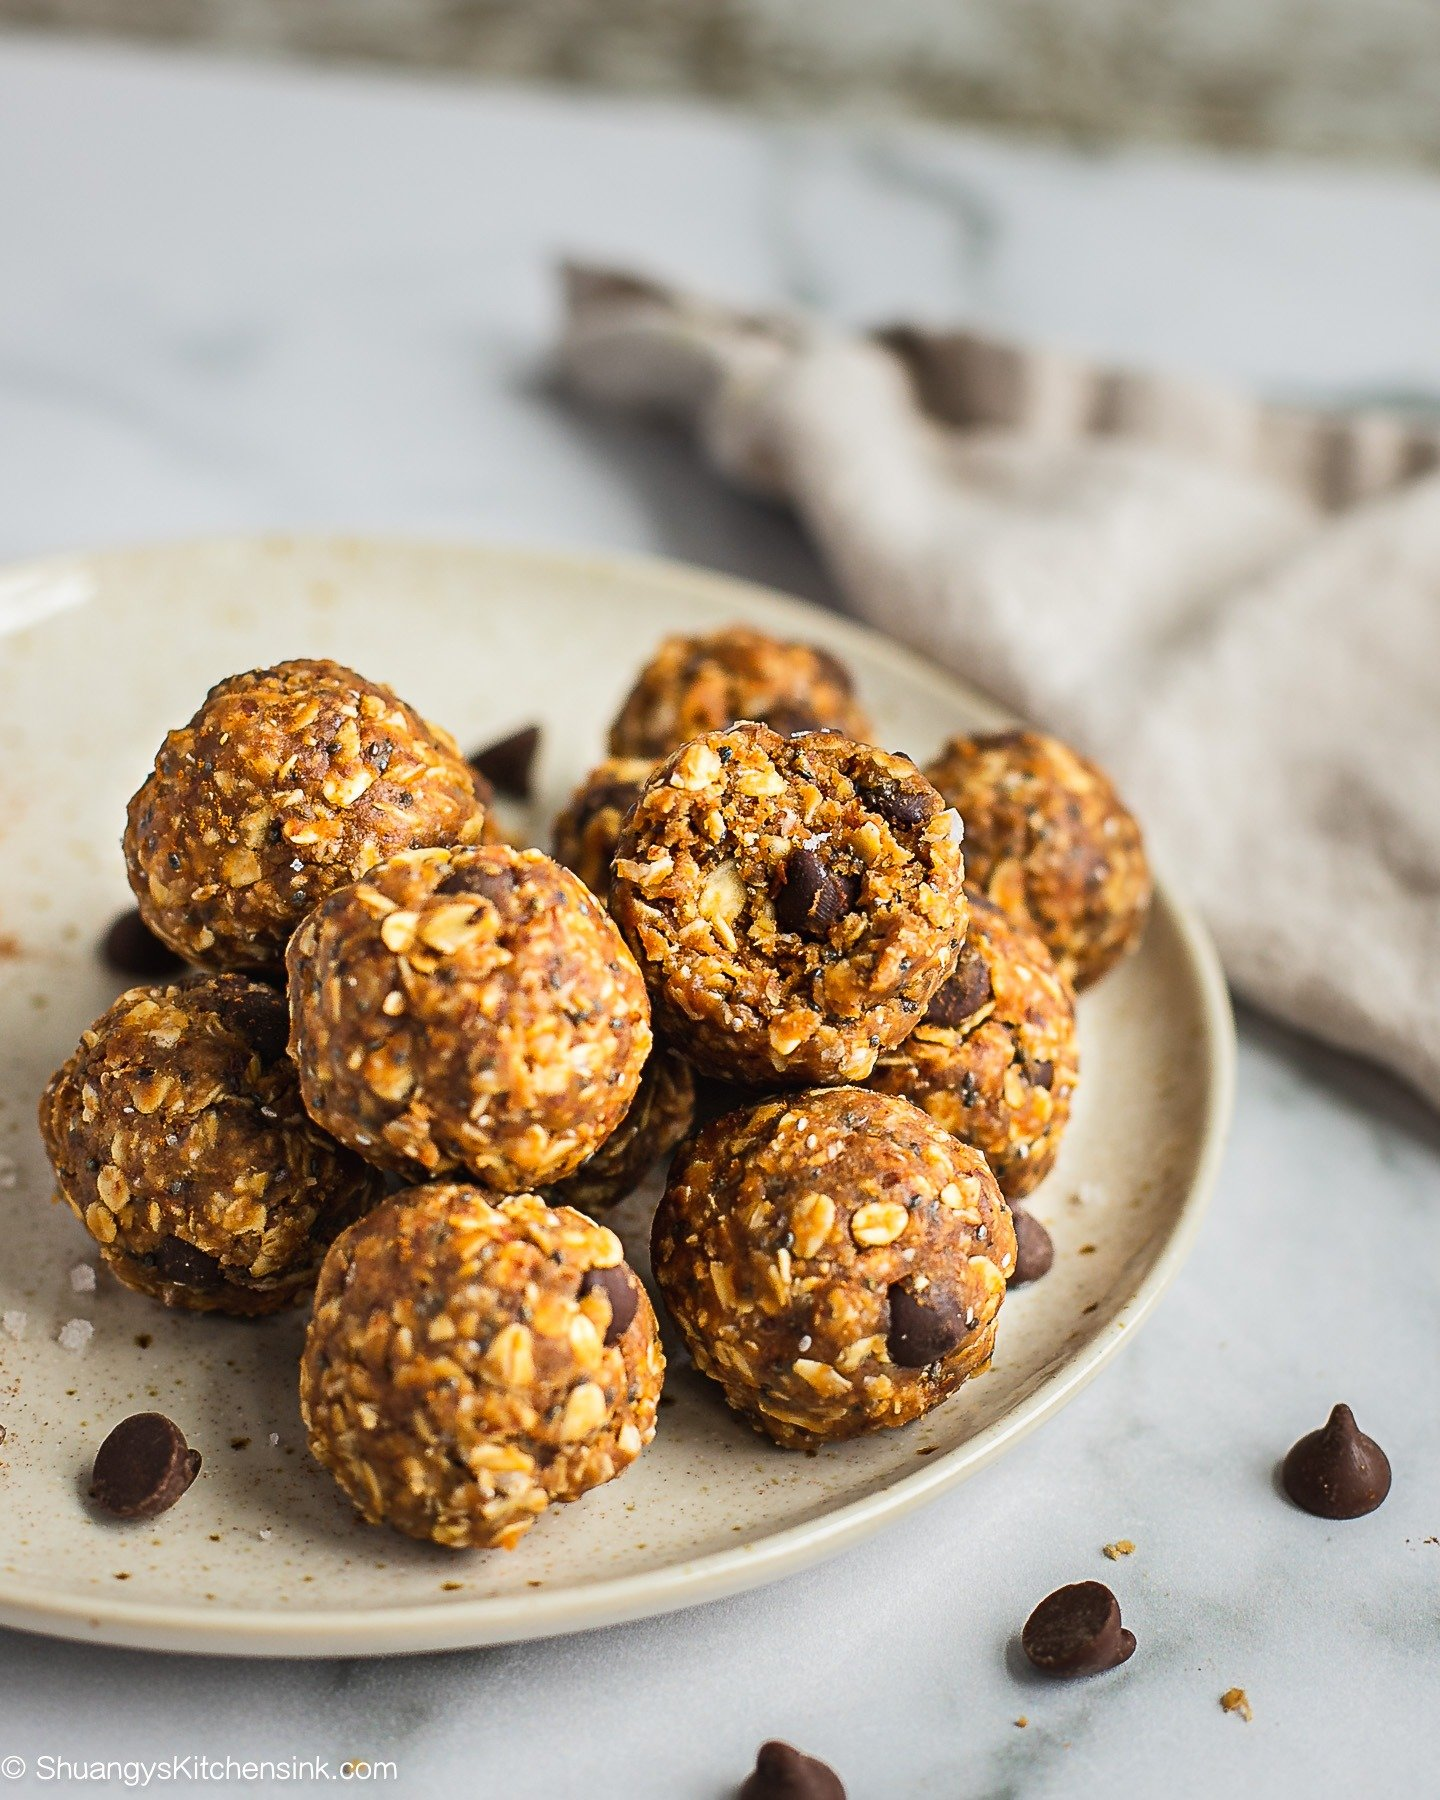 A plate of peanut butter oatmeal balls. There is a bite on the top one. There are a few chocolate chips on the plate and table.